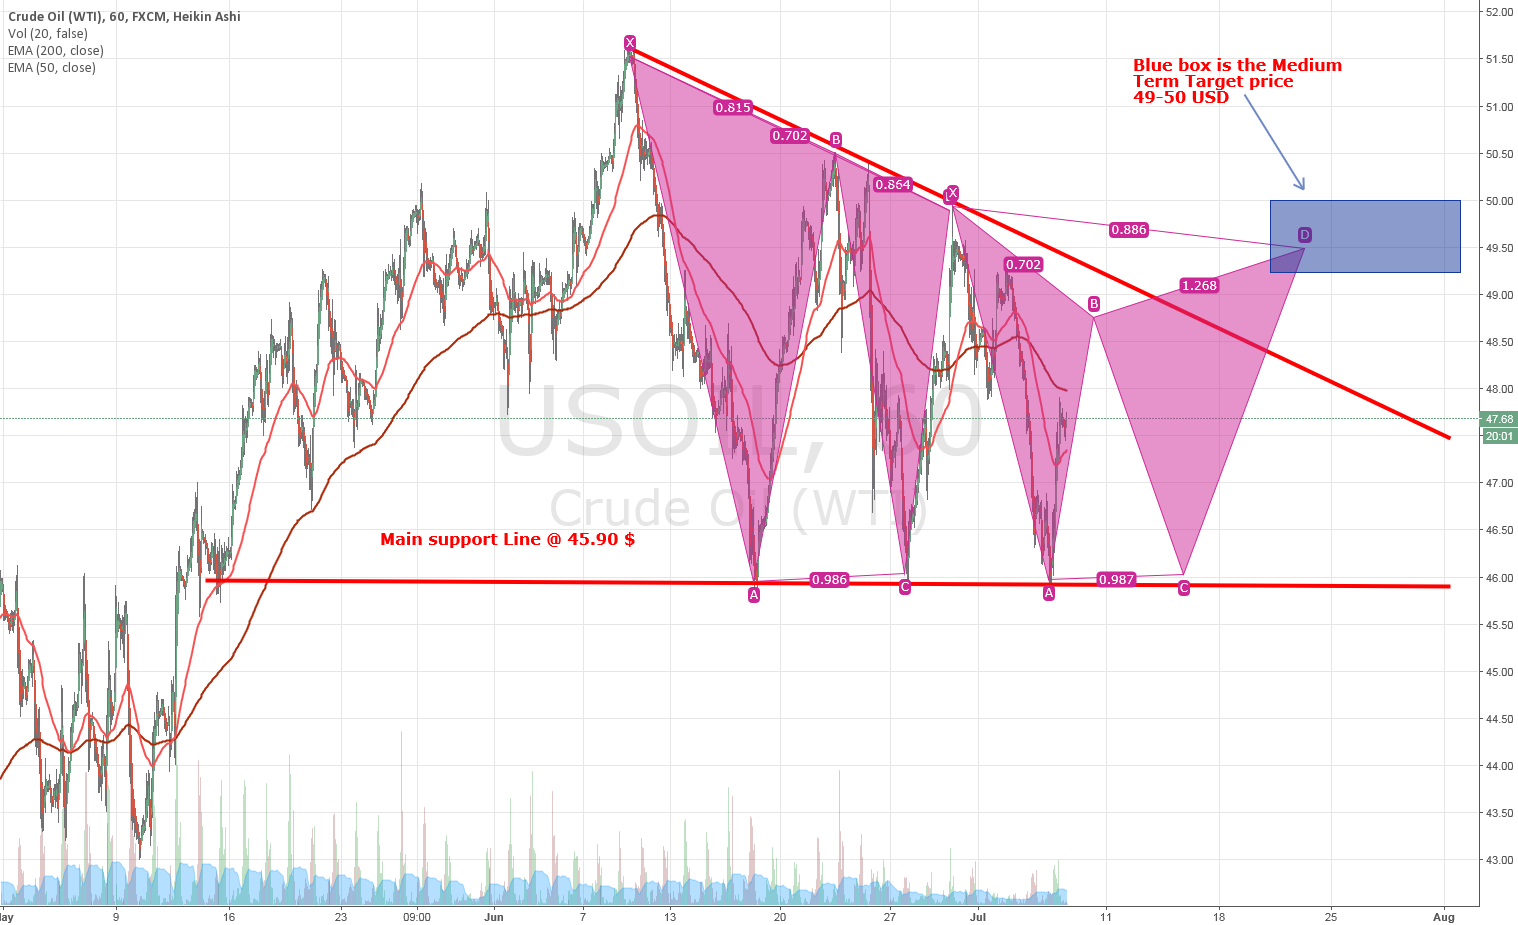 CRUDE OIL (USOIL)